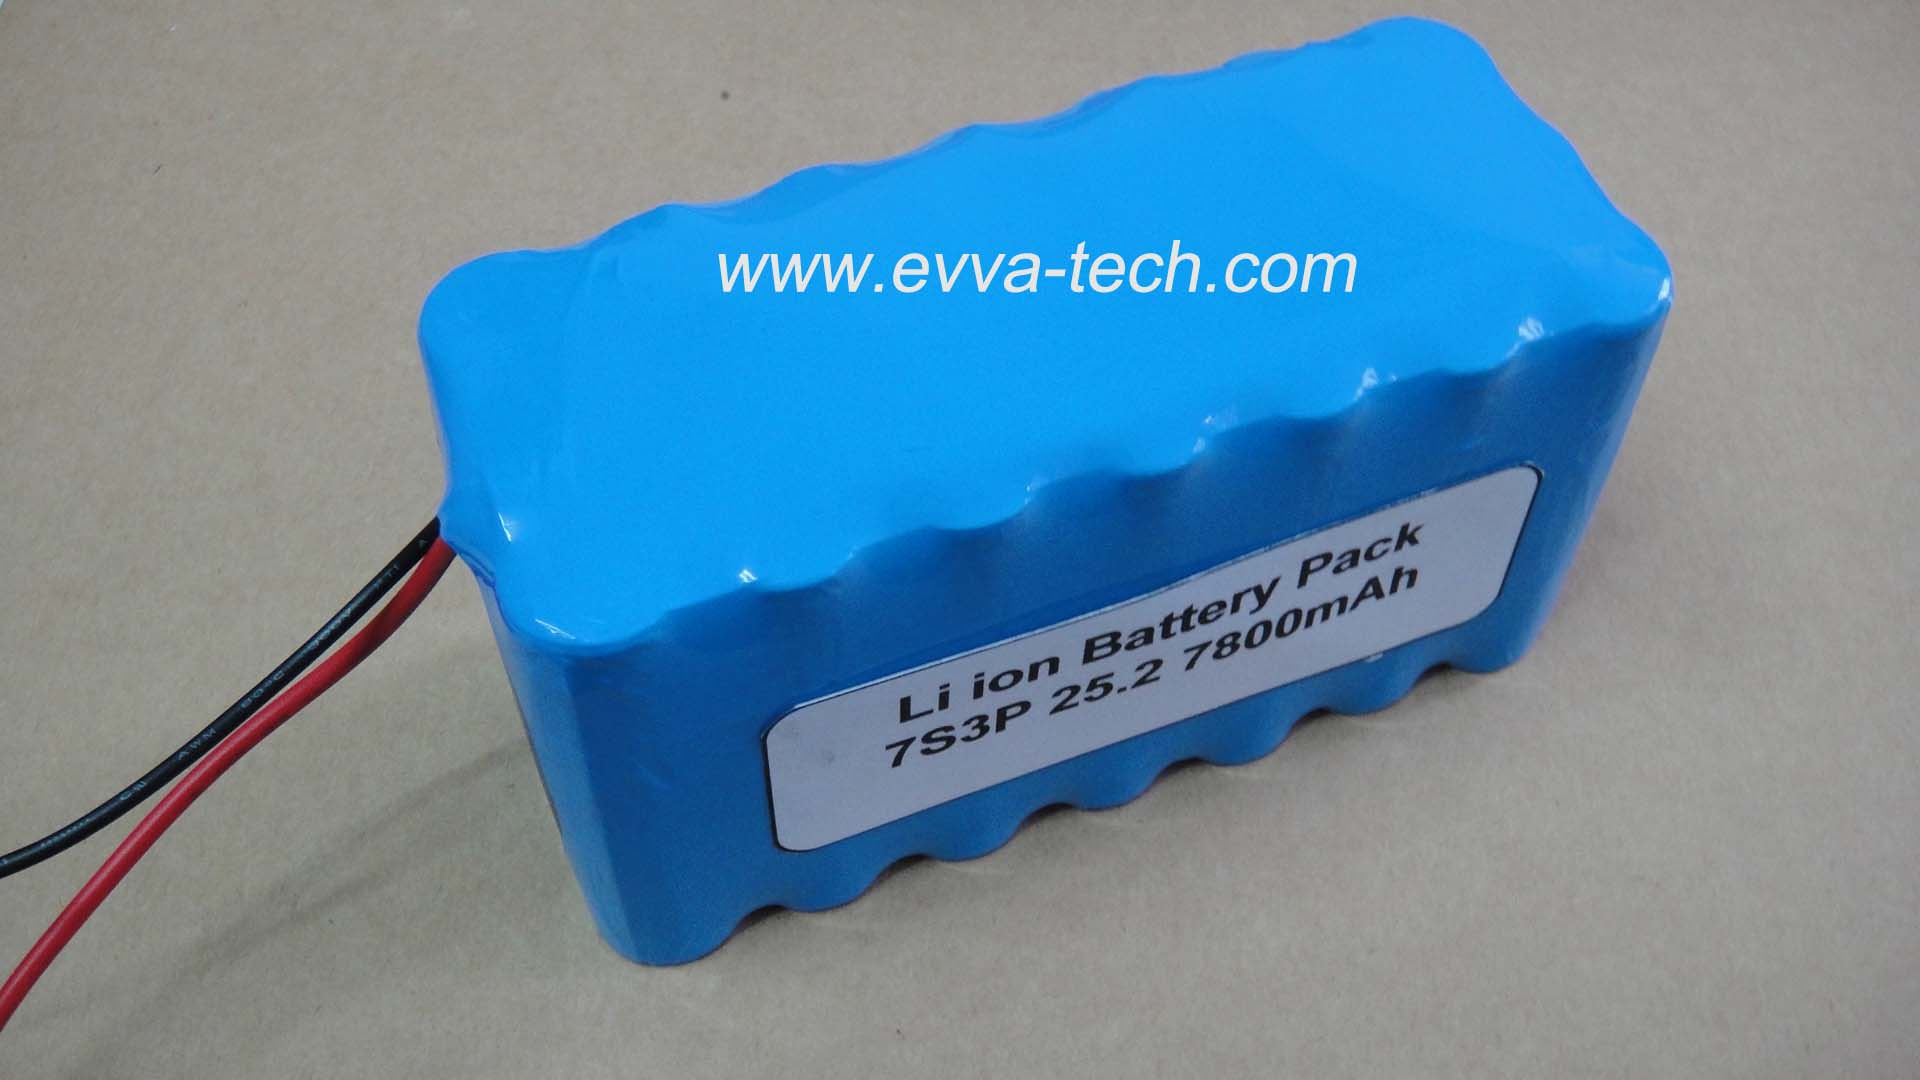 Battery Pack with 18650 25.2V 7800mAh 7S3P